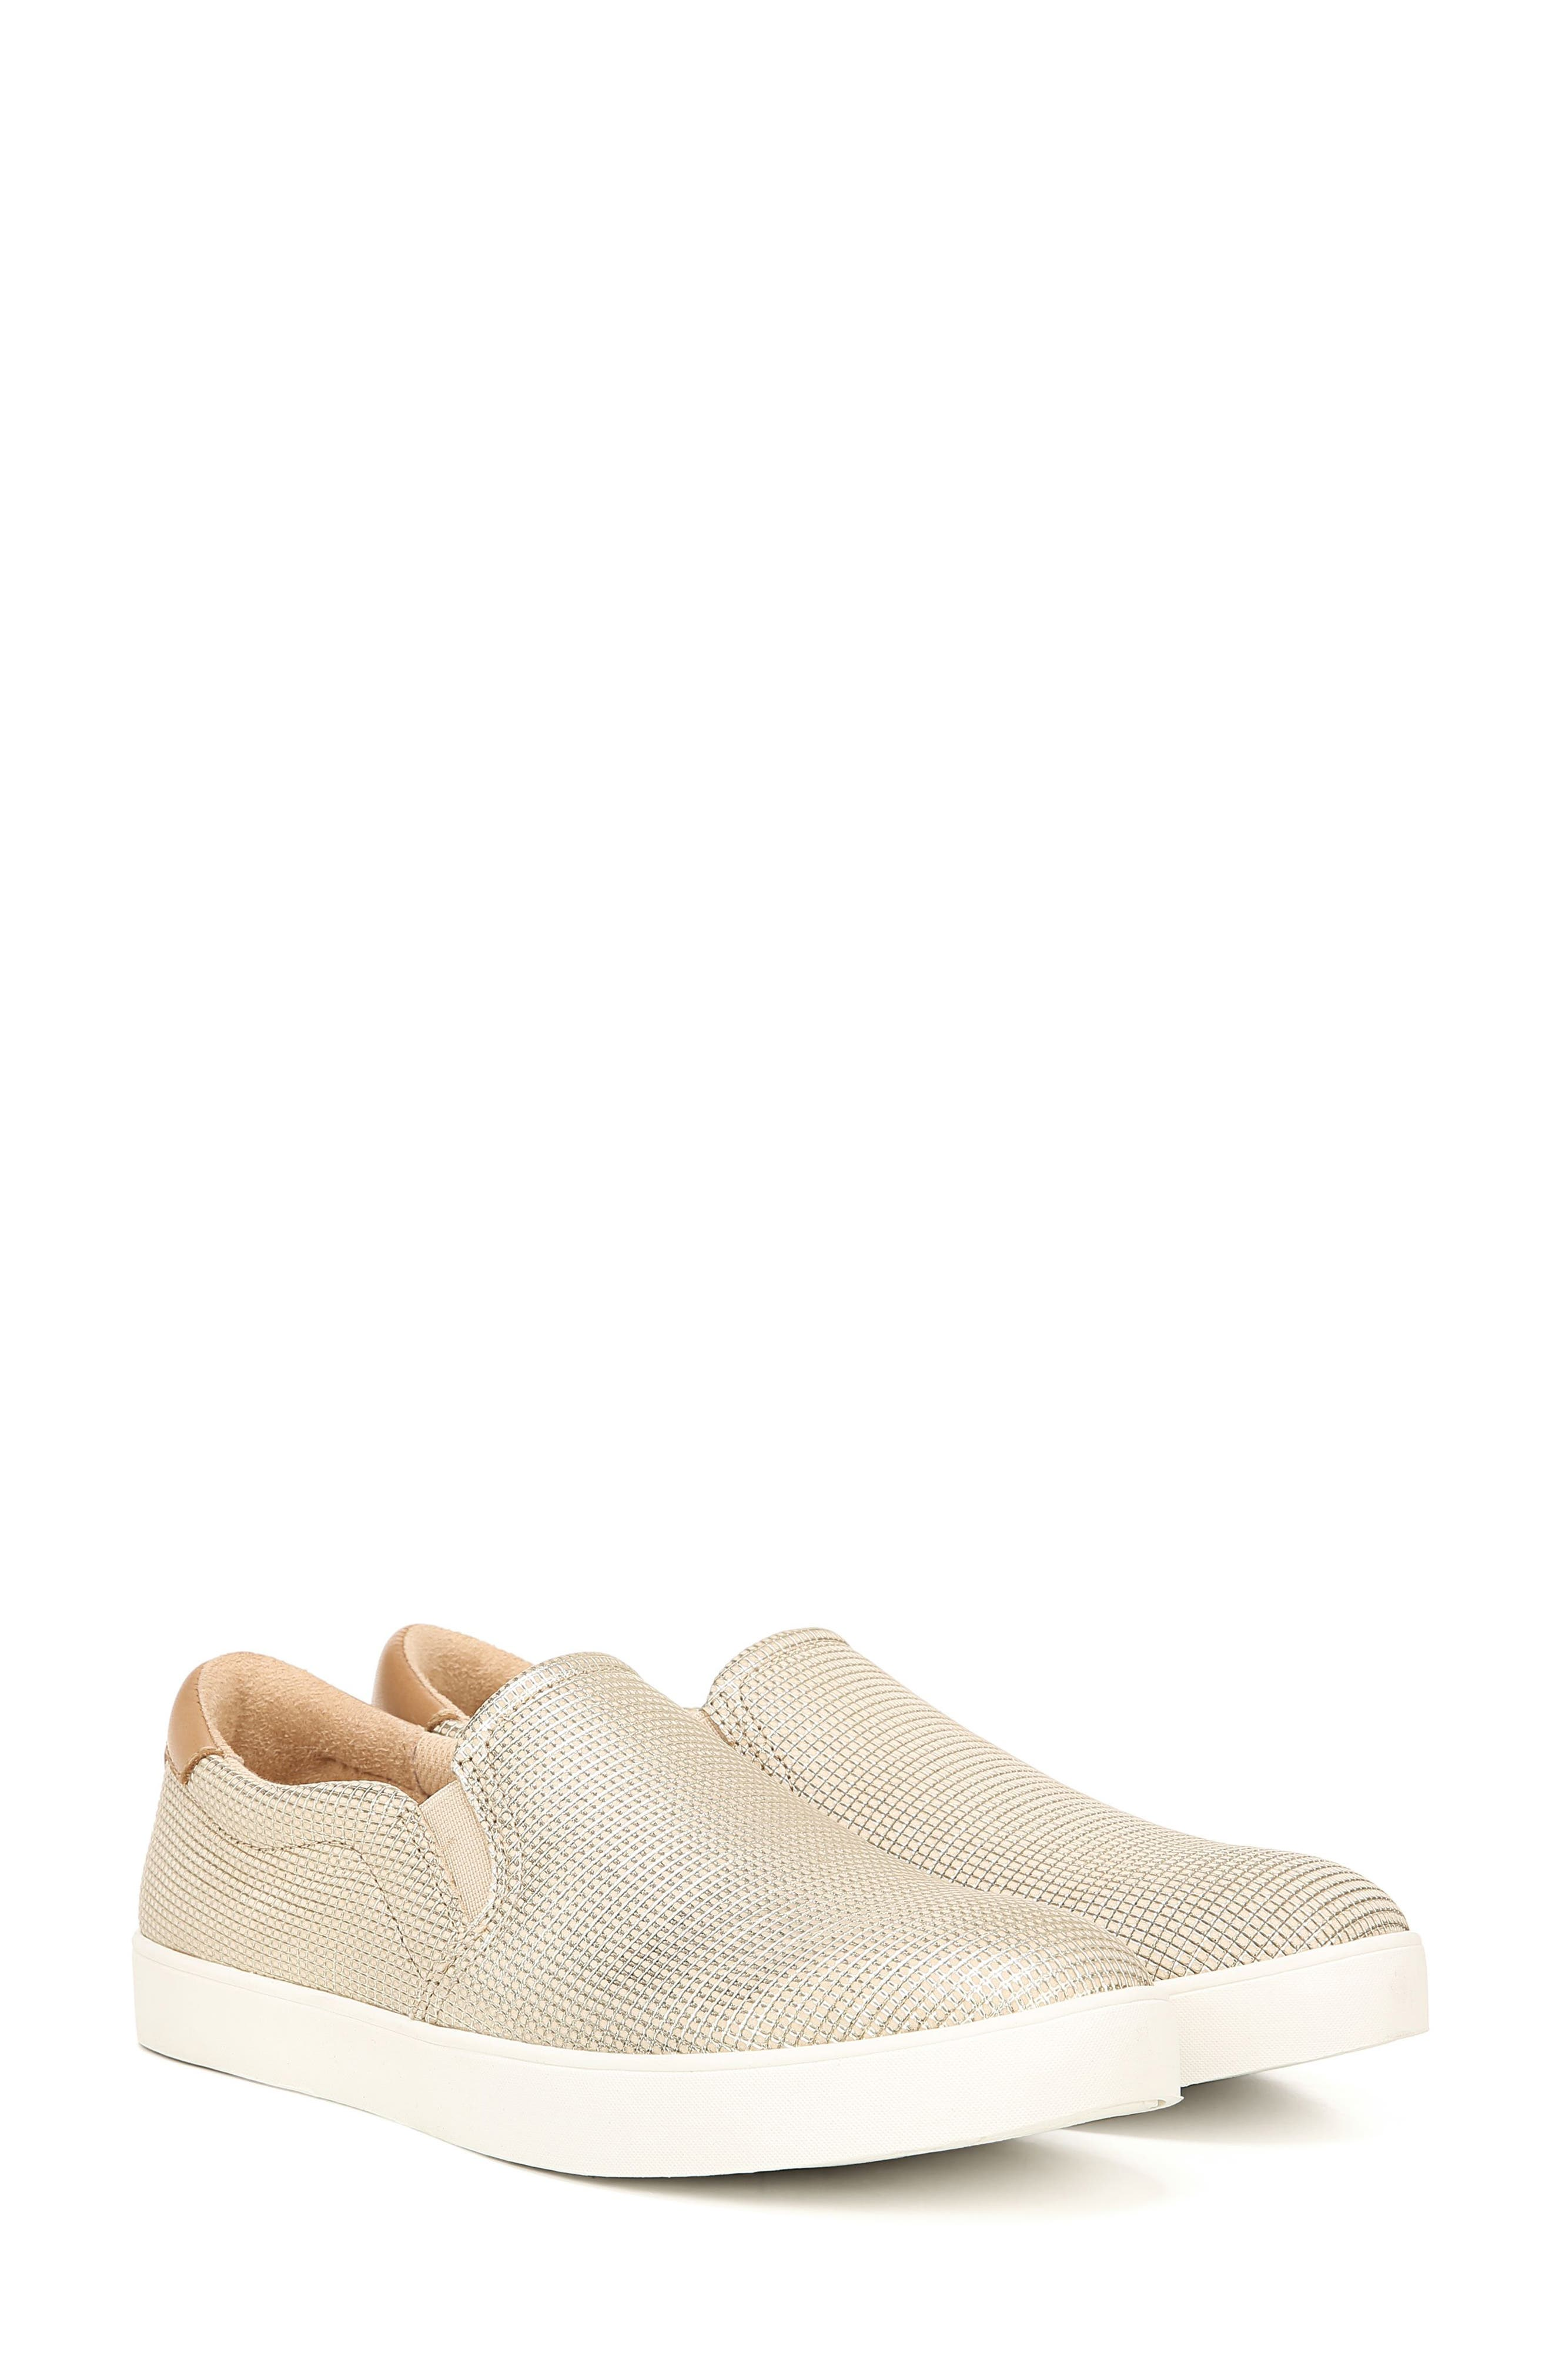 ,                             Original Collection 'Scout' Slip On Sneaker,                             Alternate thumbnail 9, color,                             BEIGE LEATHER